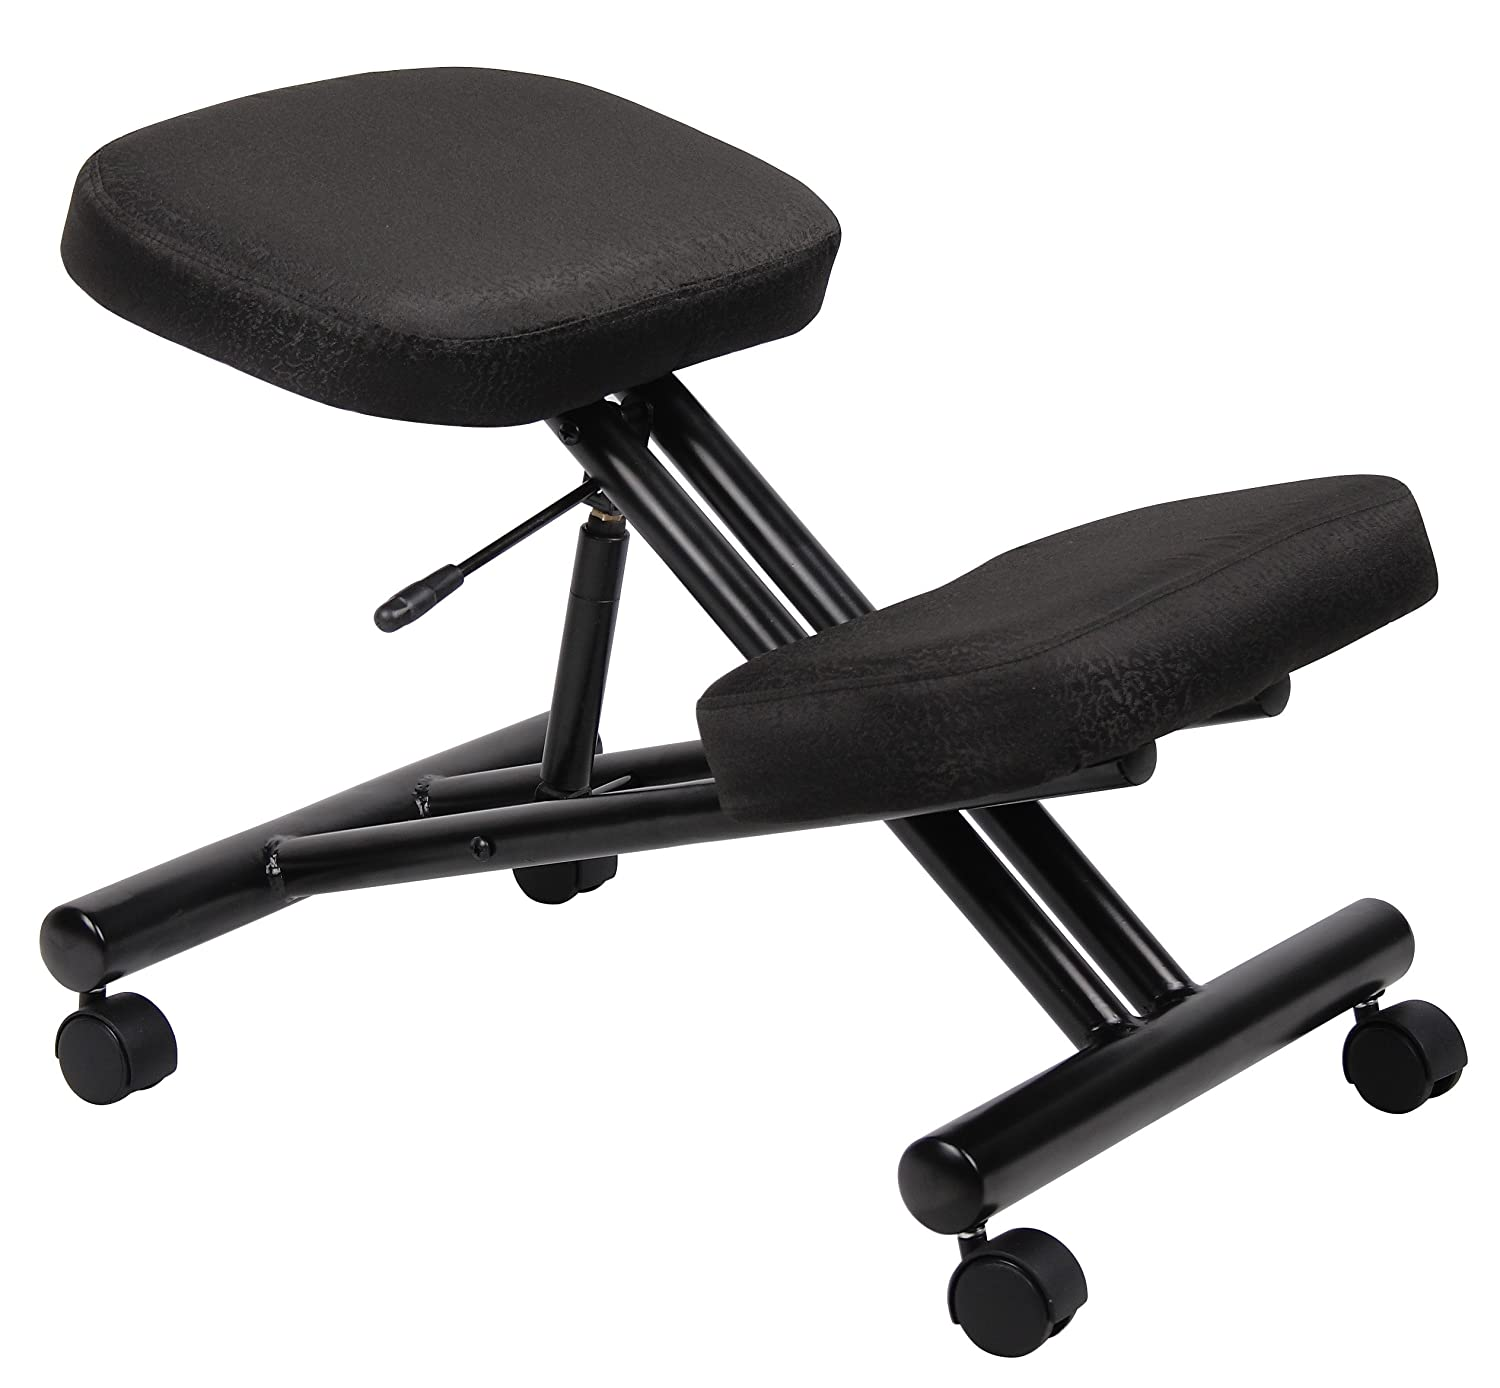 Boss Office Products B248 Ergonomic Kneeling Stool in Black